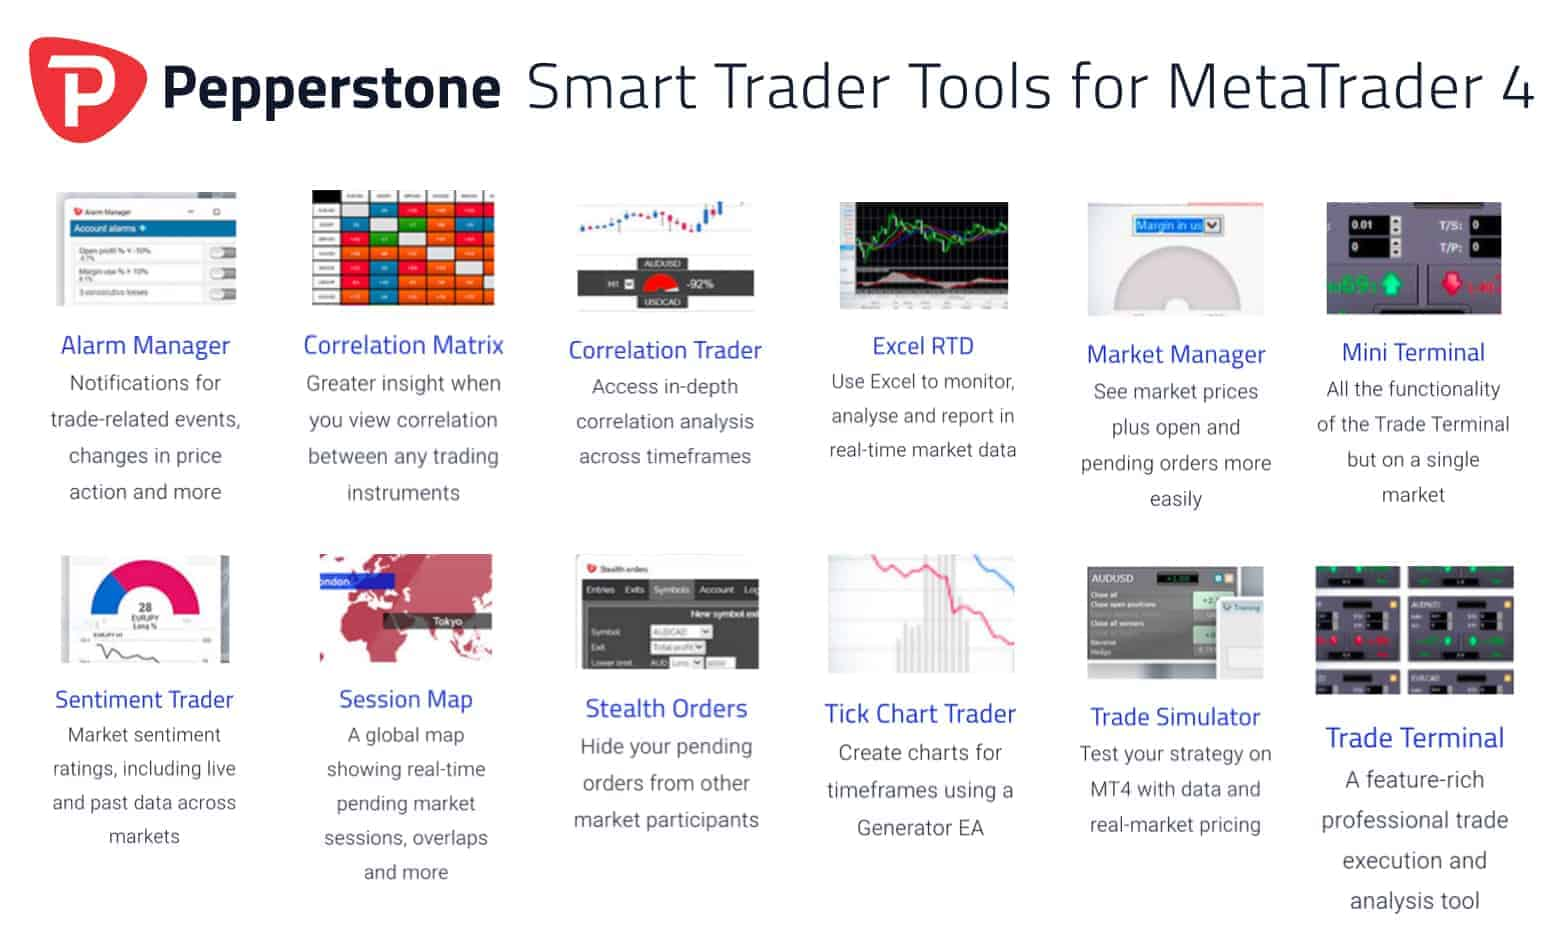 Pepperstone MT4 Smart Trader Tools